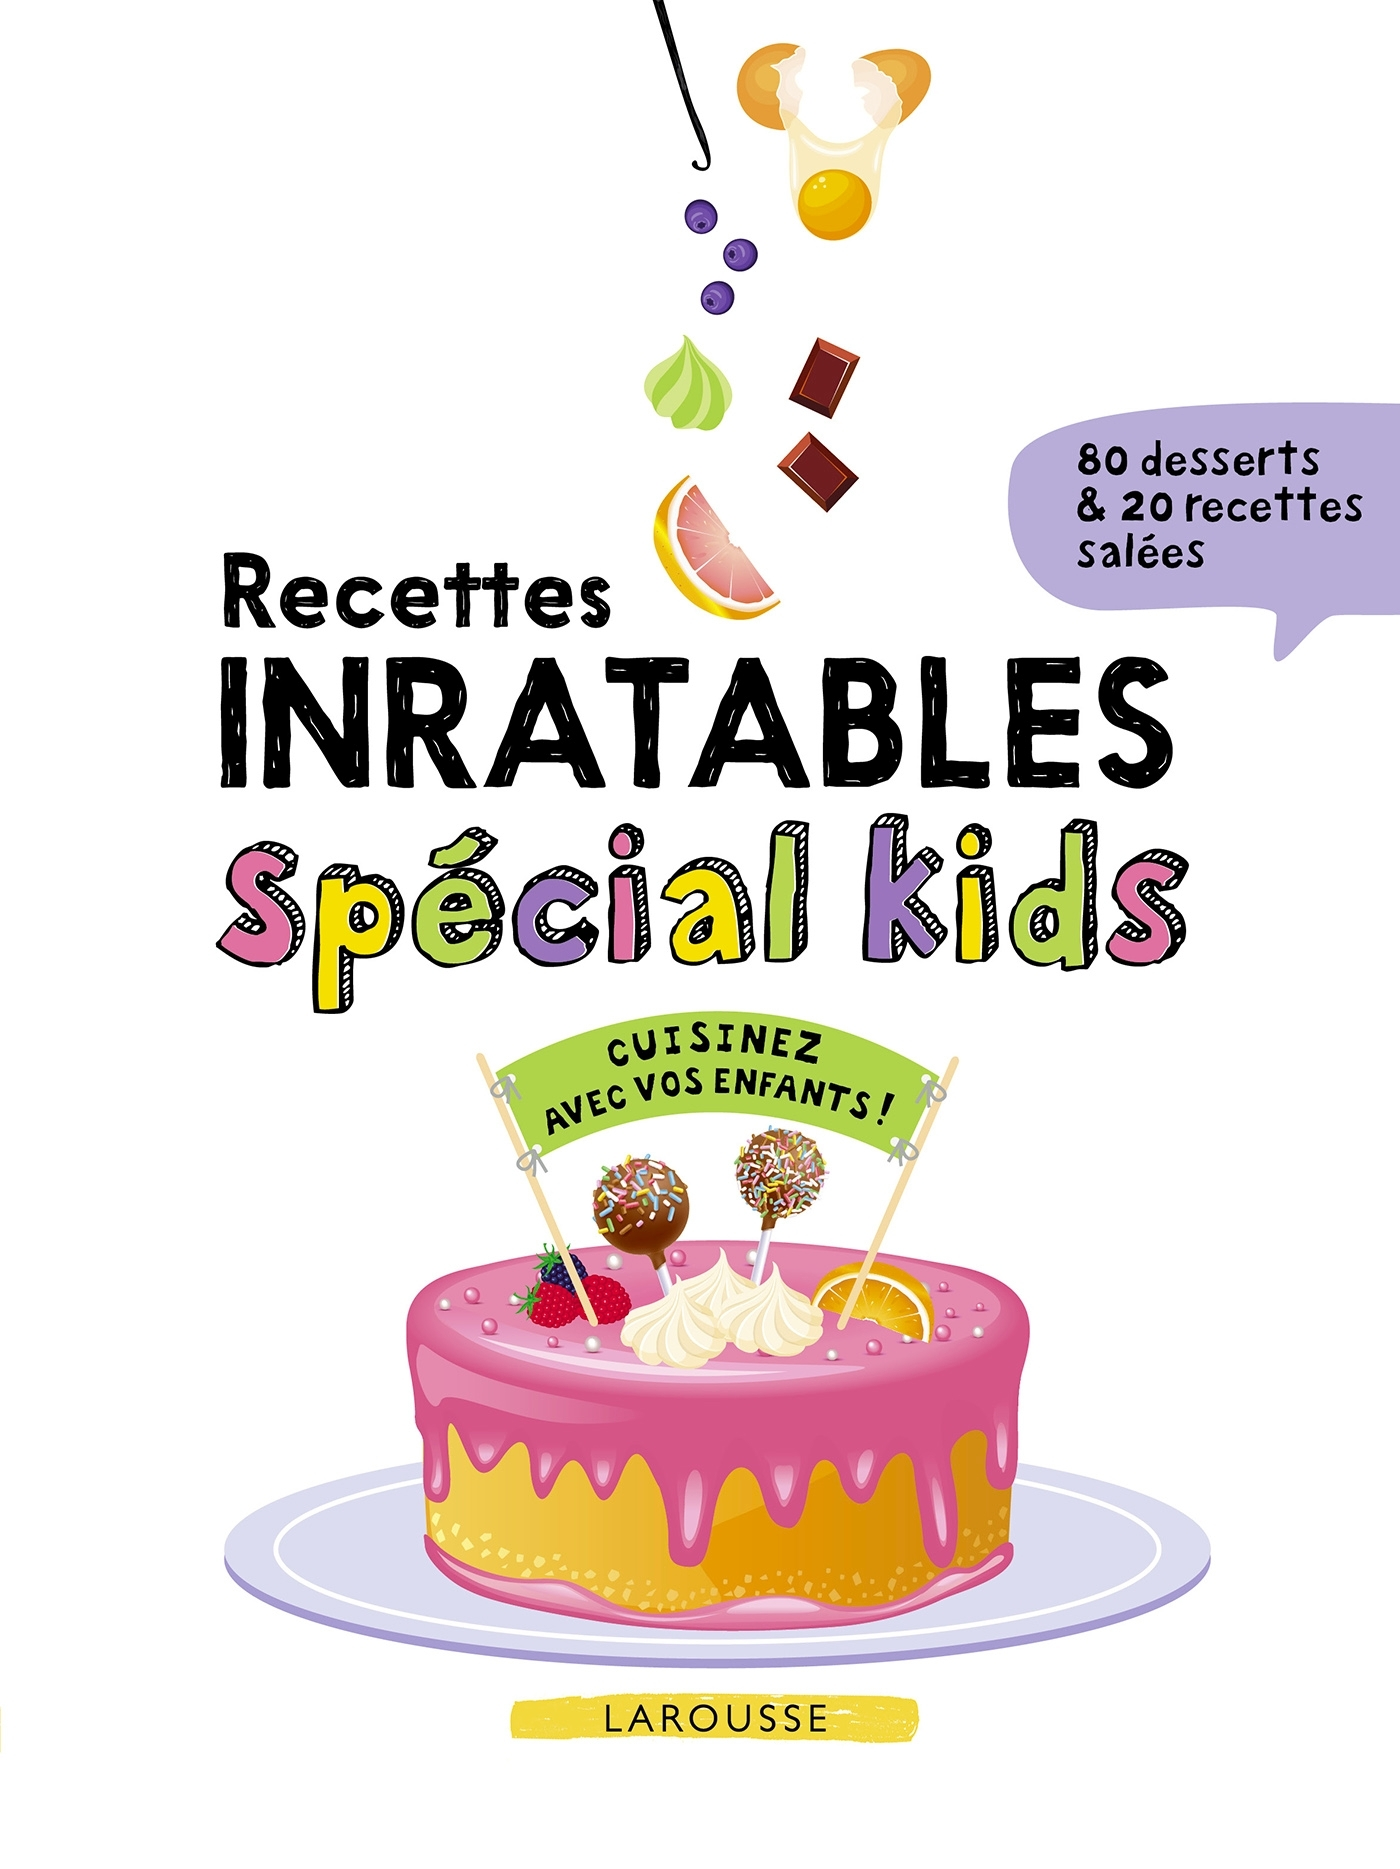 RECETTES INRATABLES SPECIAL KIDS!